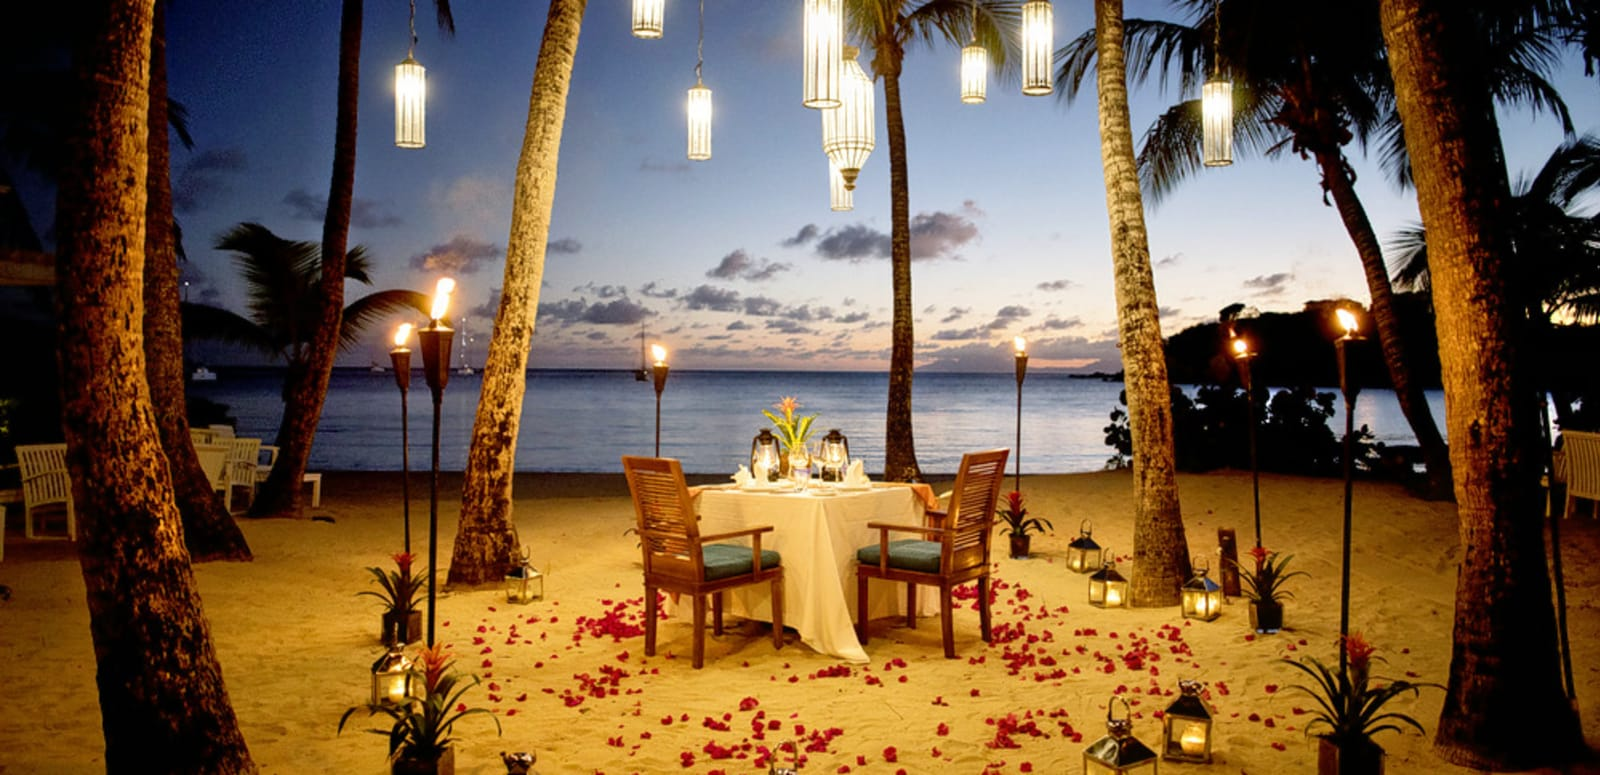 Carte Inde Bali.25 Best Romantic Dinners In Bali With Gorgeous Views